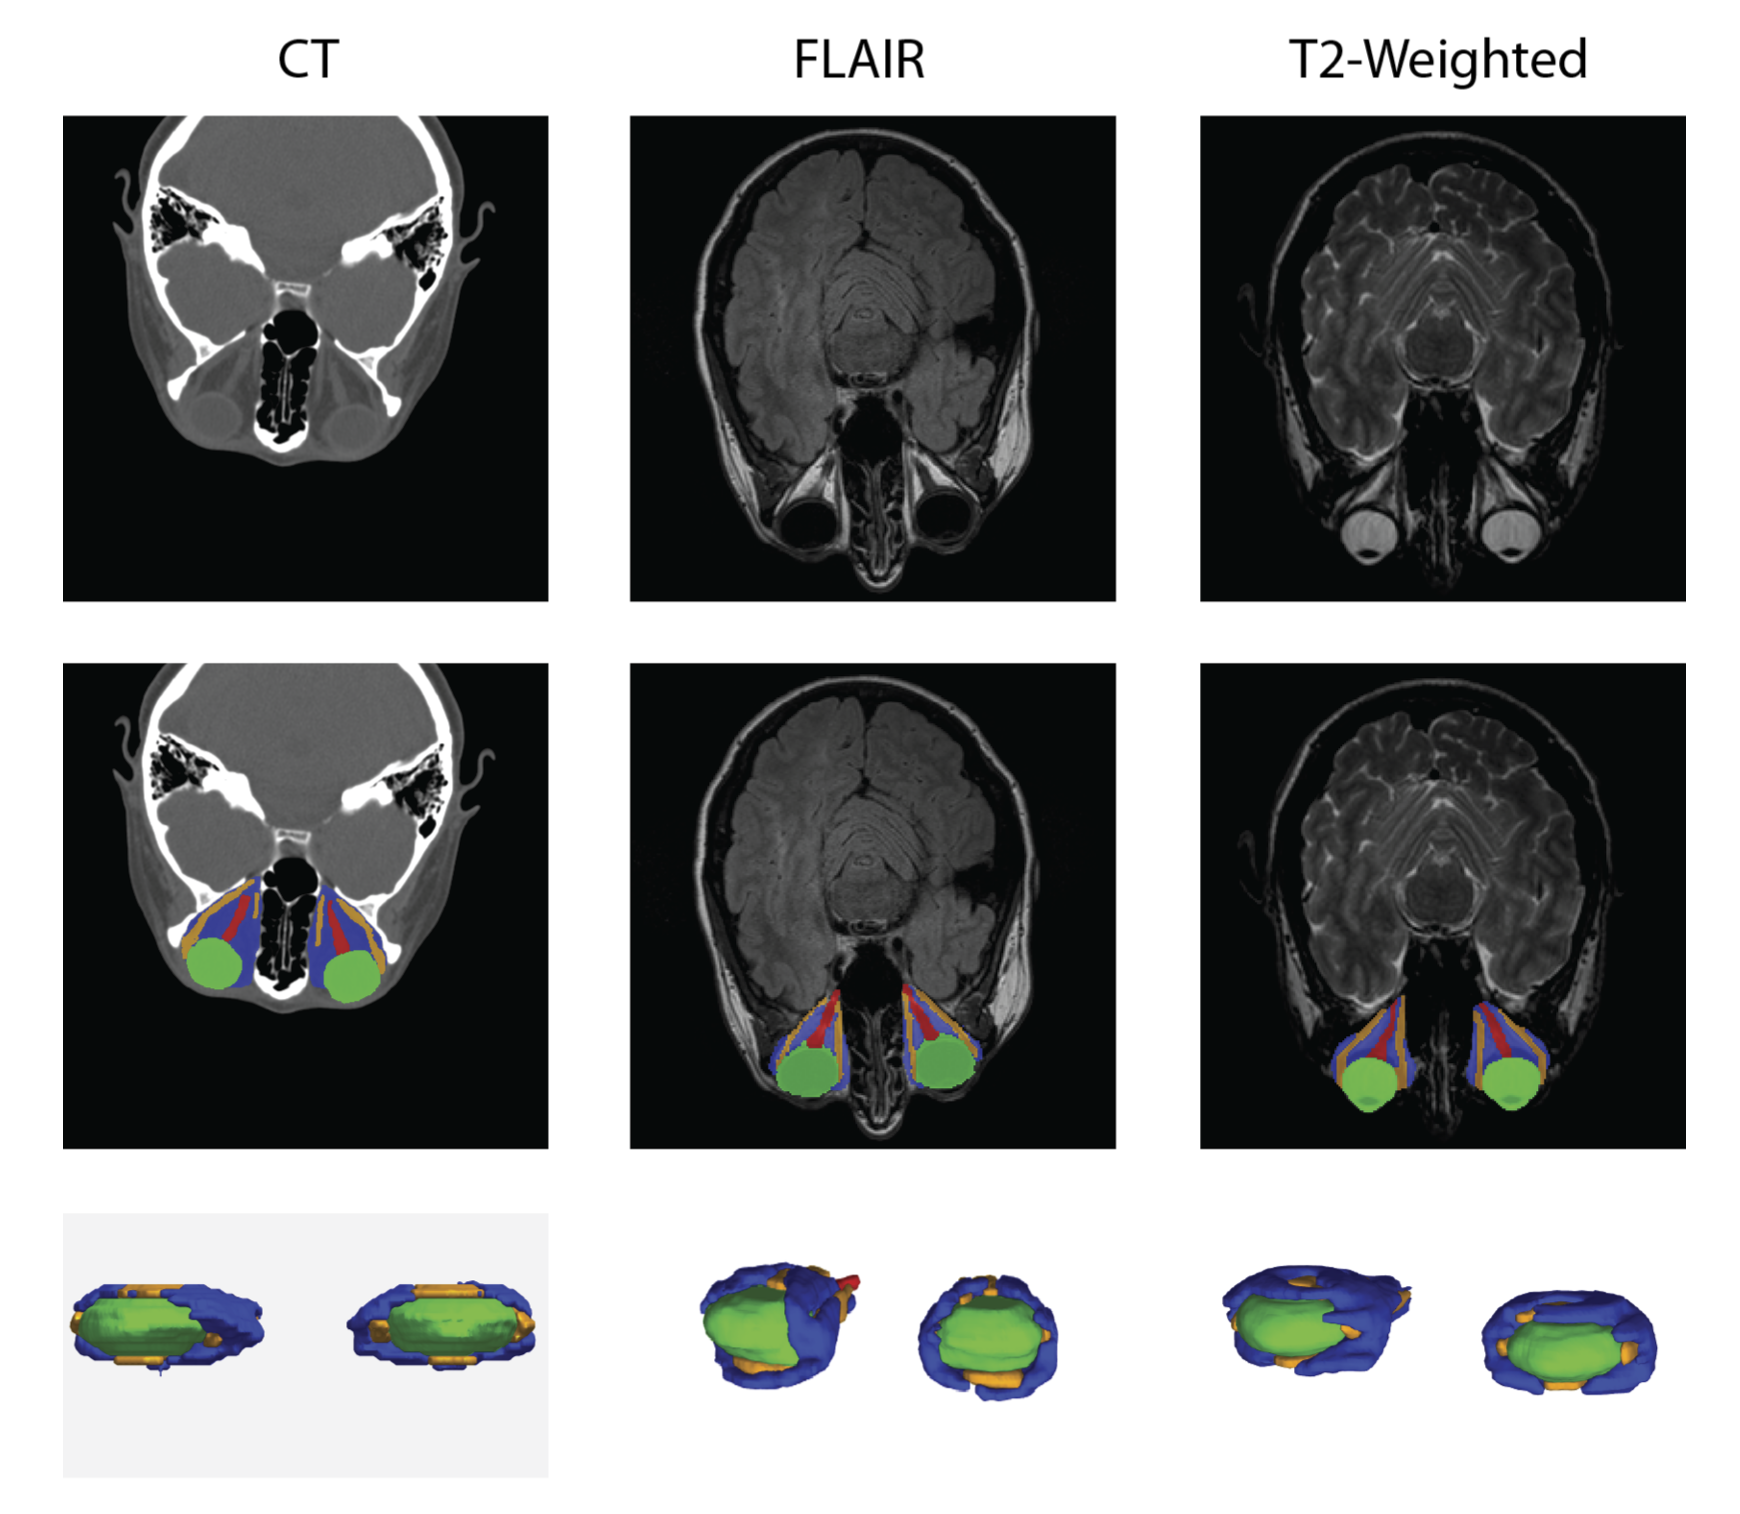 Example CT and MRI scans (top row) were expertly labeled (center row, lower row) and used in multi-atlas segmentation pipelines.